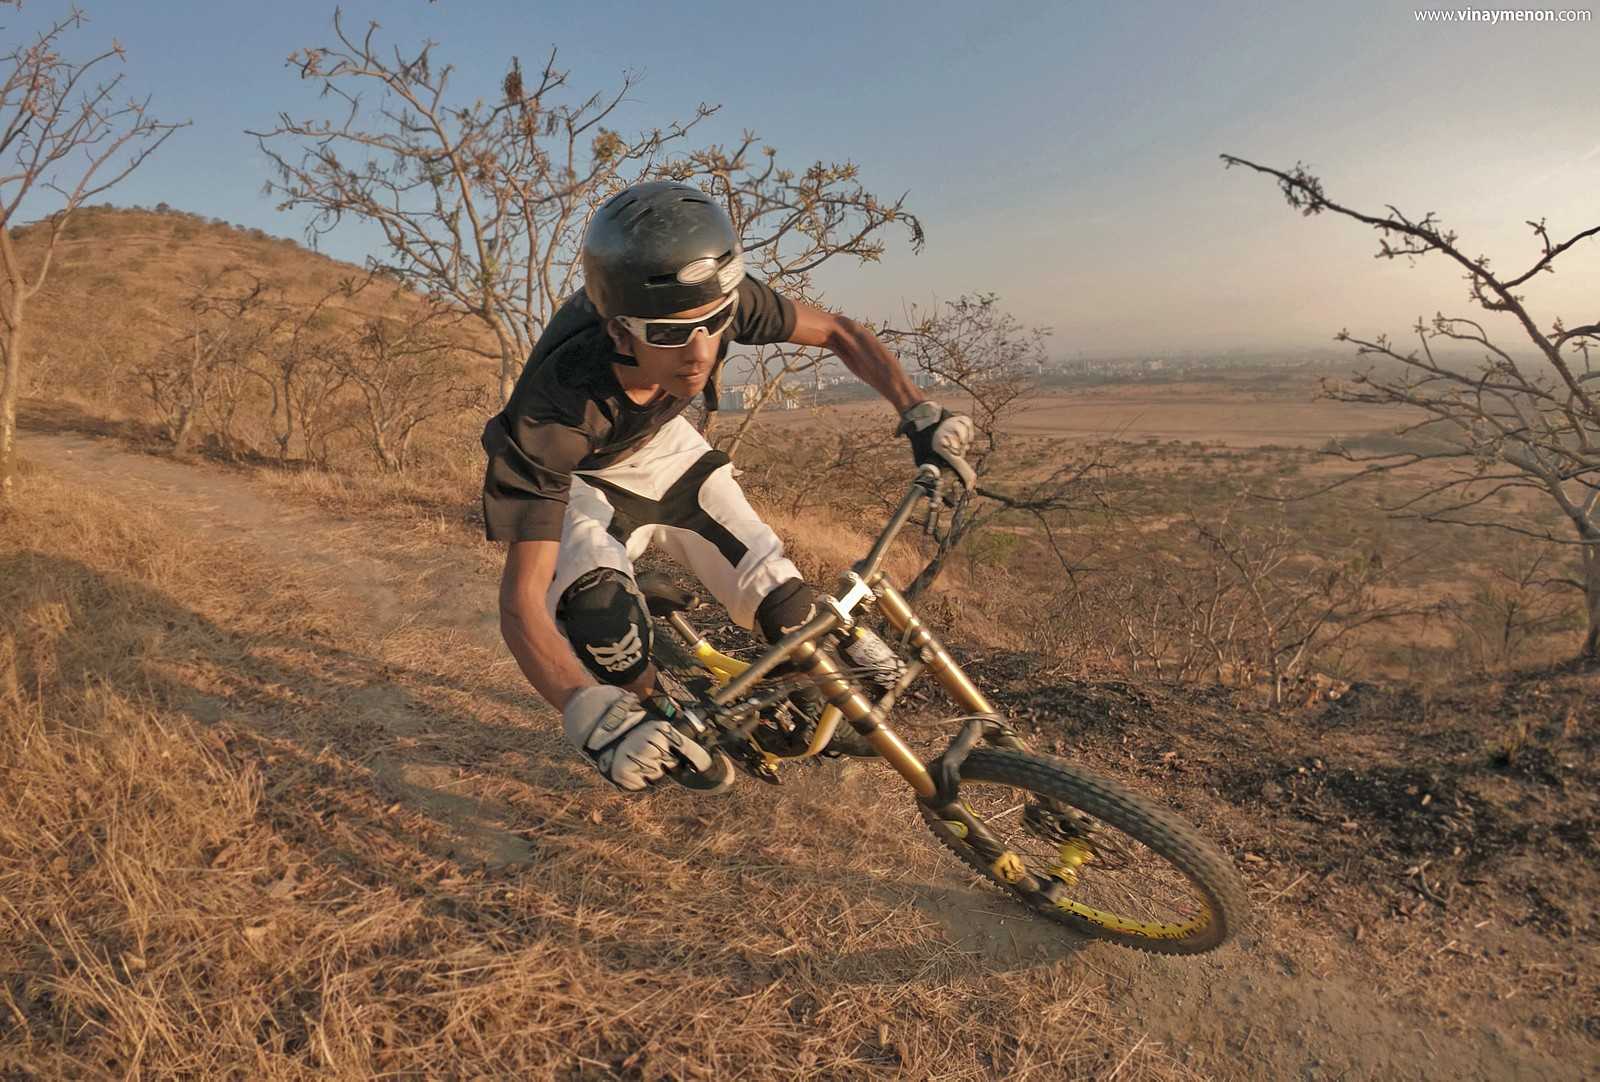 A new year, new day - downhillermenon - Mountain Biking Pictures - Vital MTB